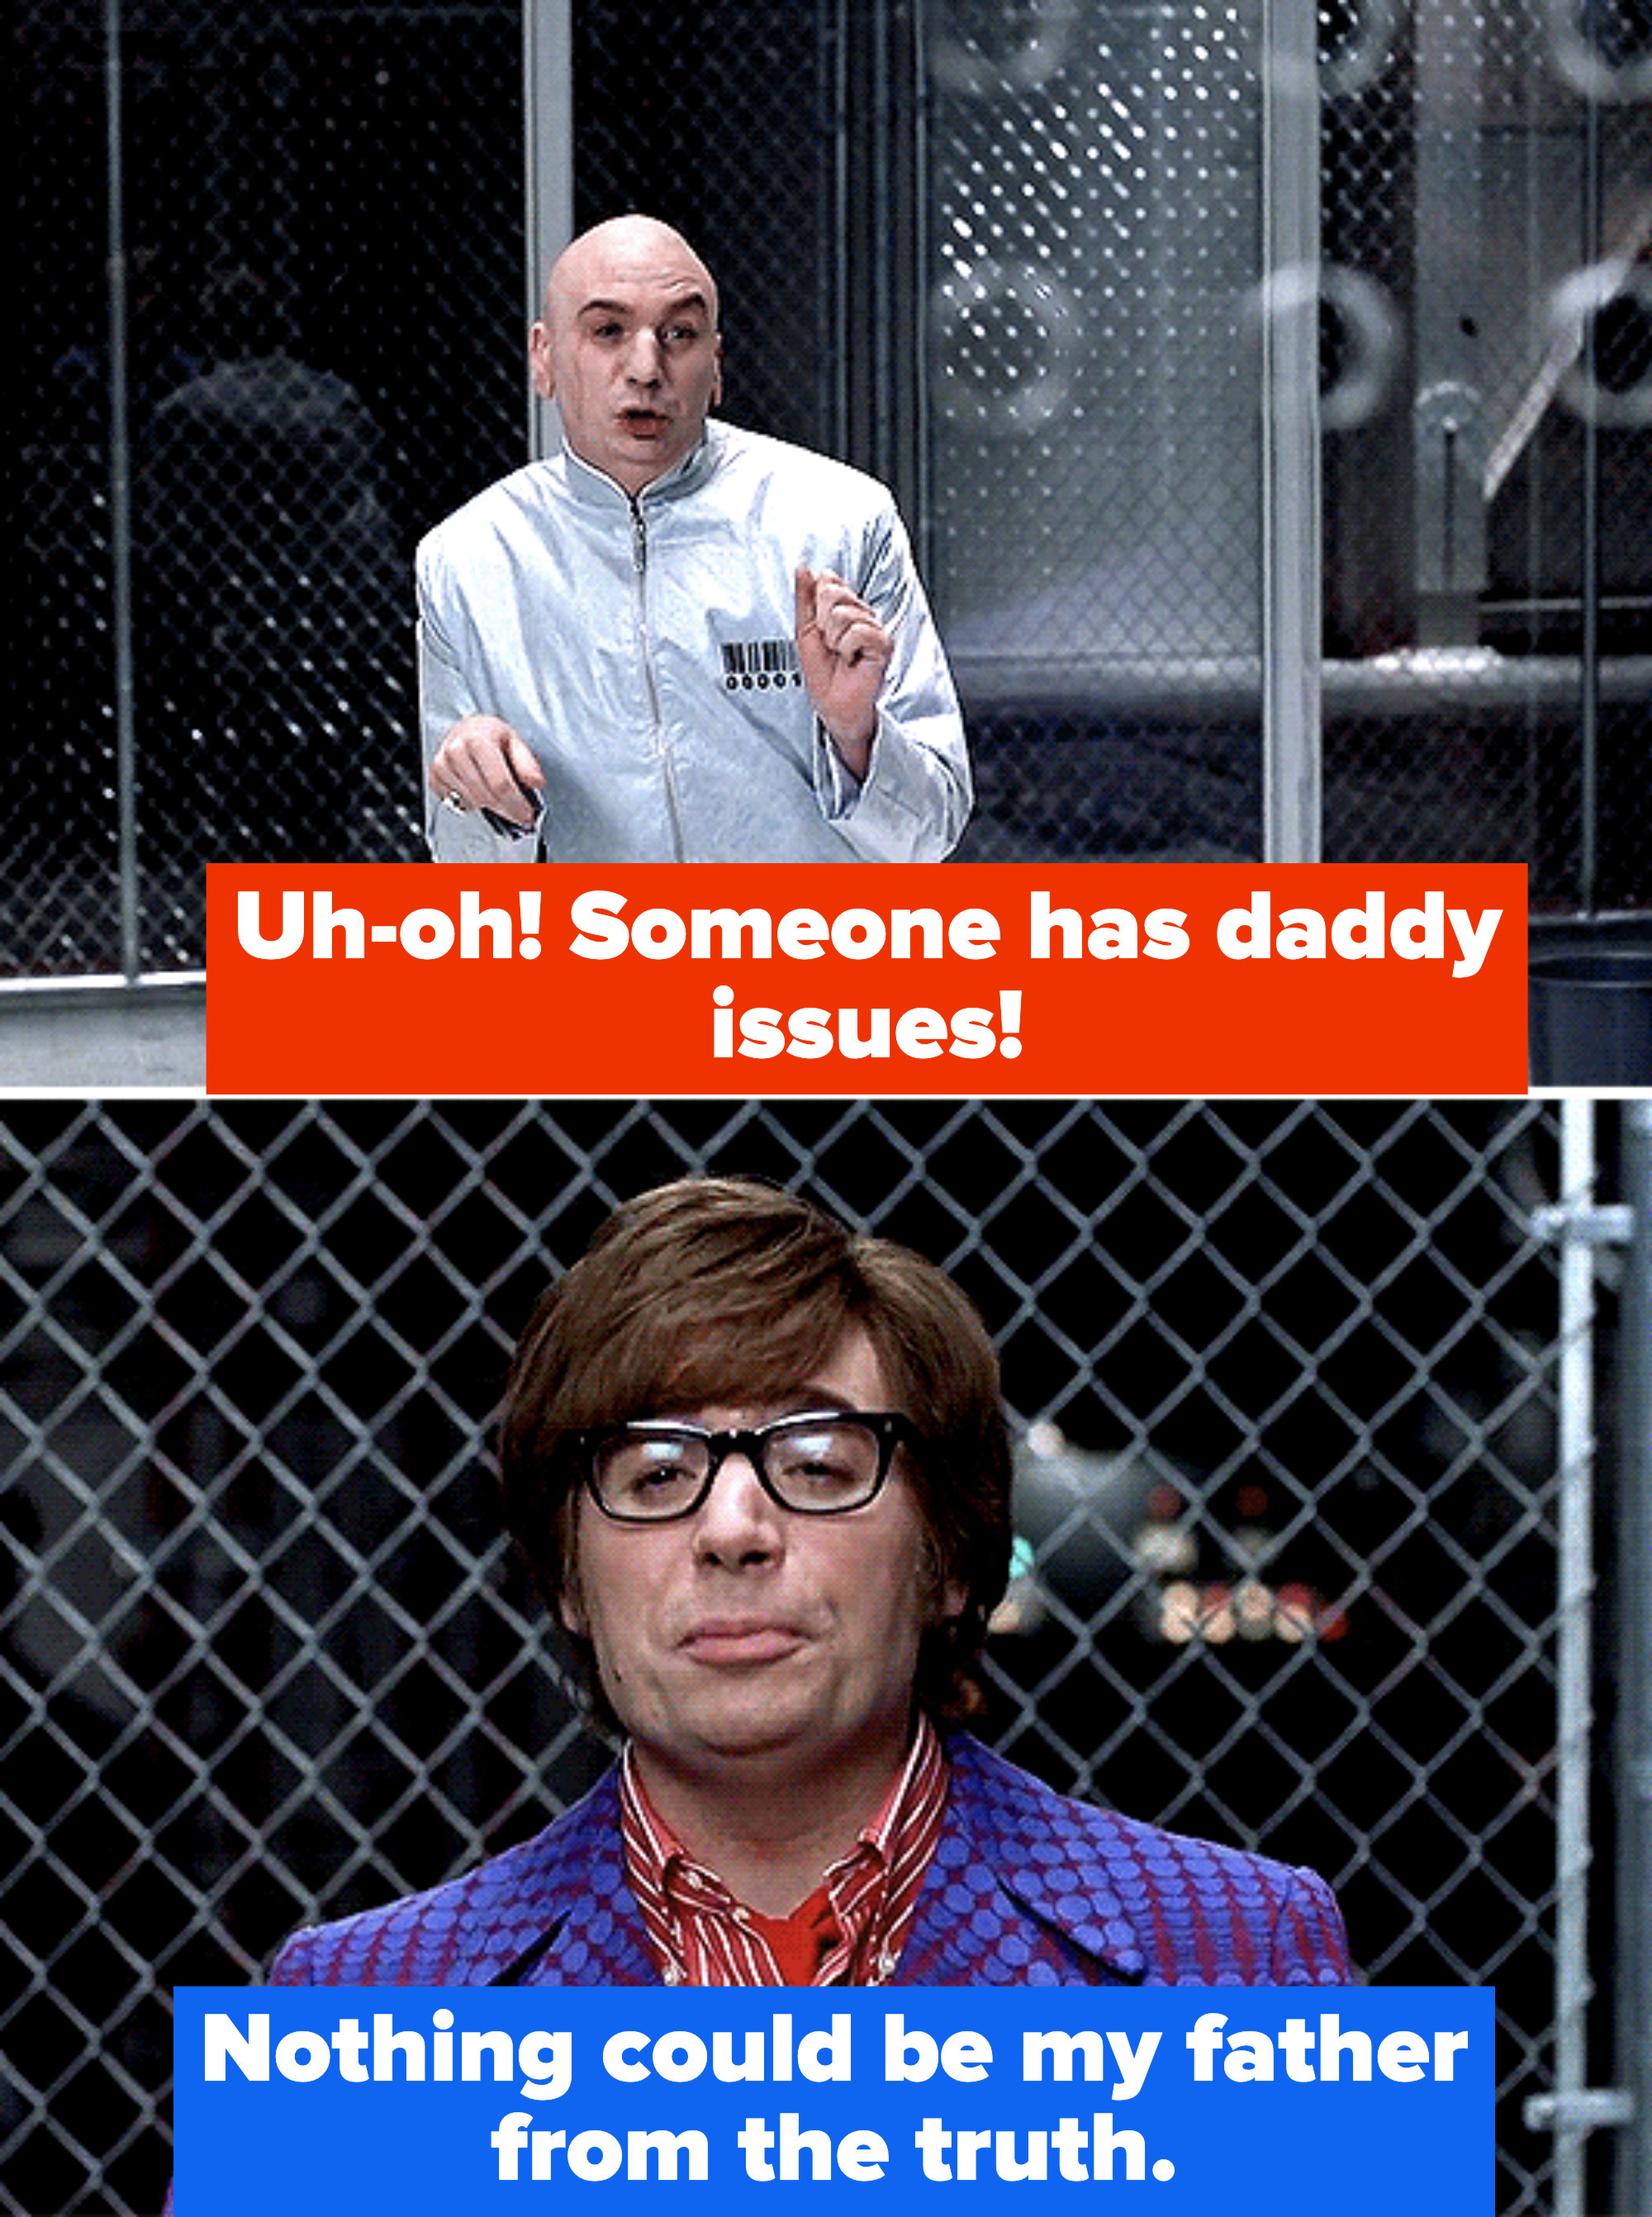 """Dr. Evil accuses Austin of having daddy issues and he replies, """"Nothing could be my father from the truth"""""""